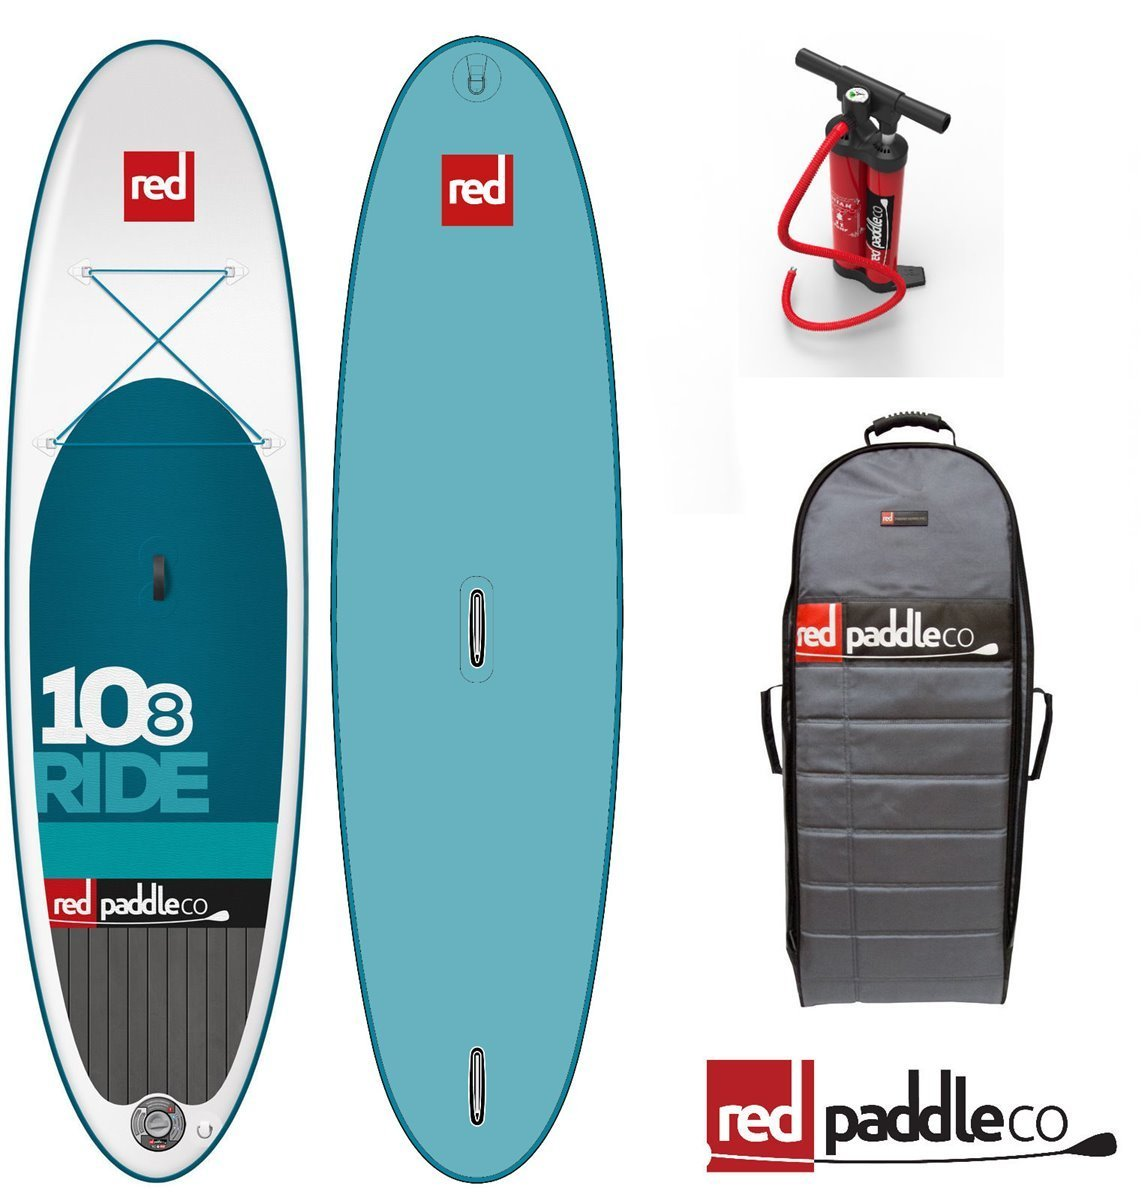 Red Paddle Ride Windsurf Juego 10.8 Stand Up Paddle Tabla de Surf Board: Amazon.es: Deportes y aire libre